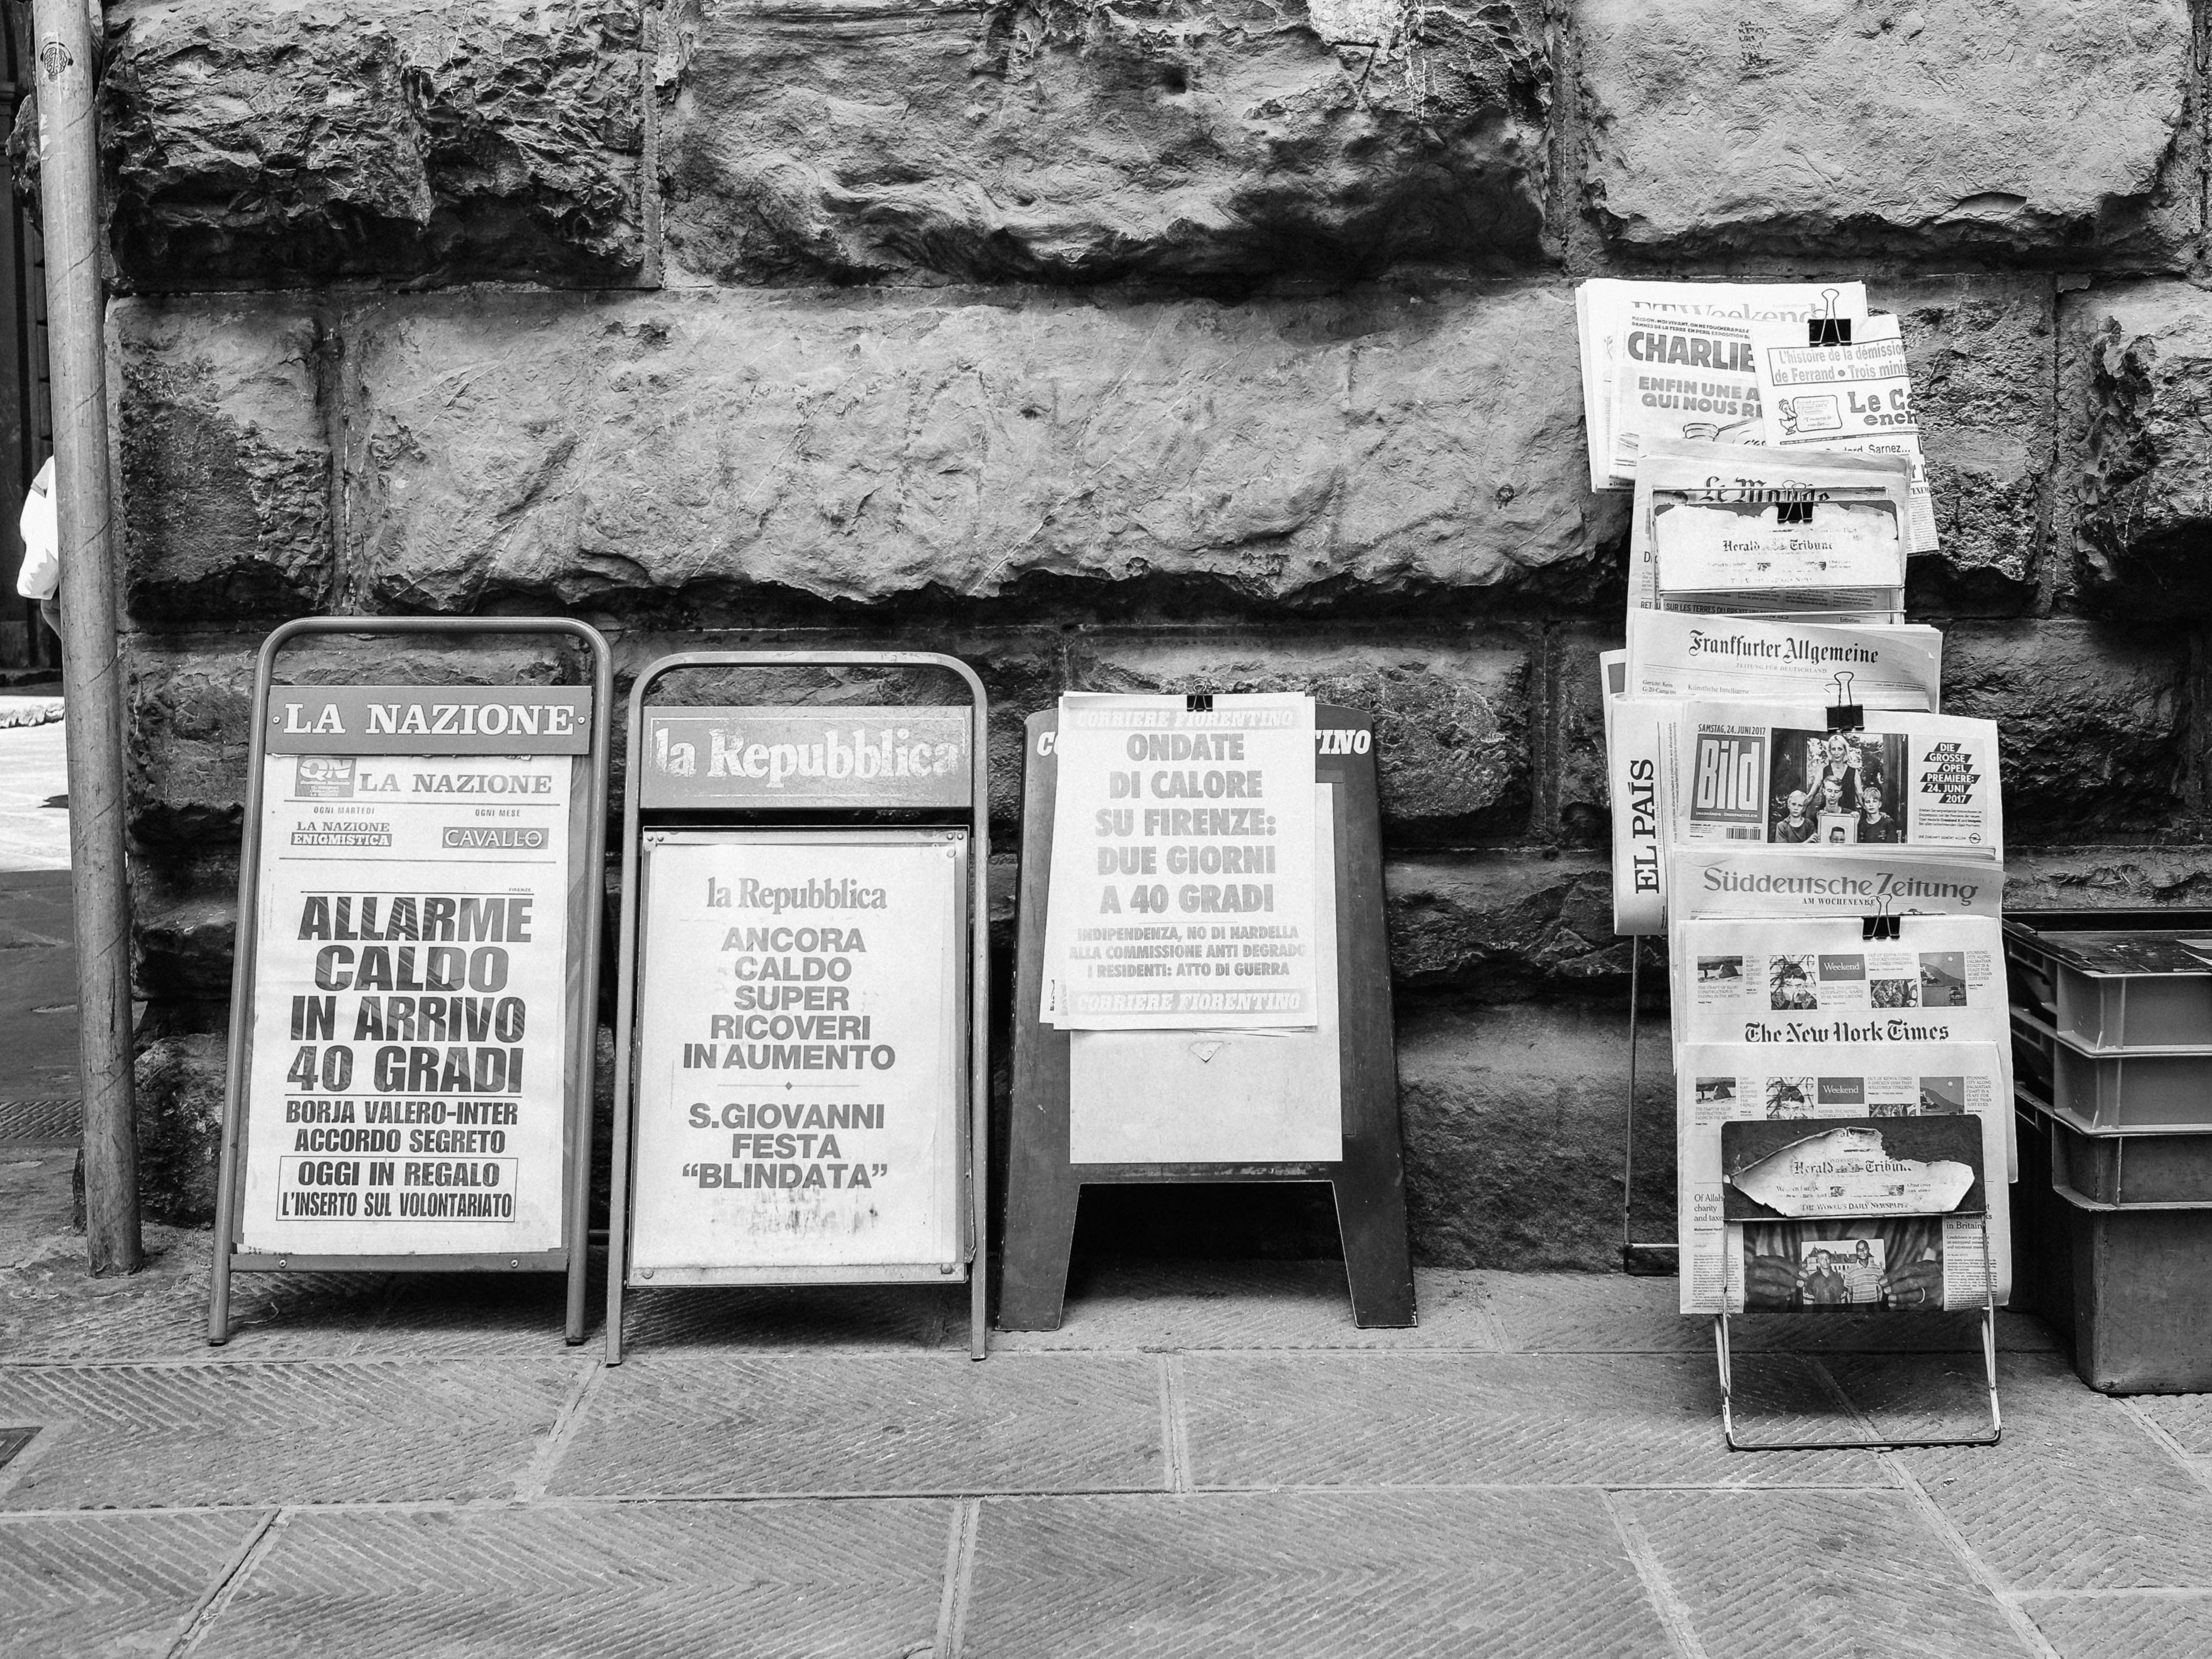 newspapers on a street